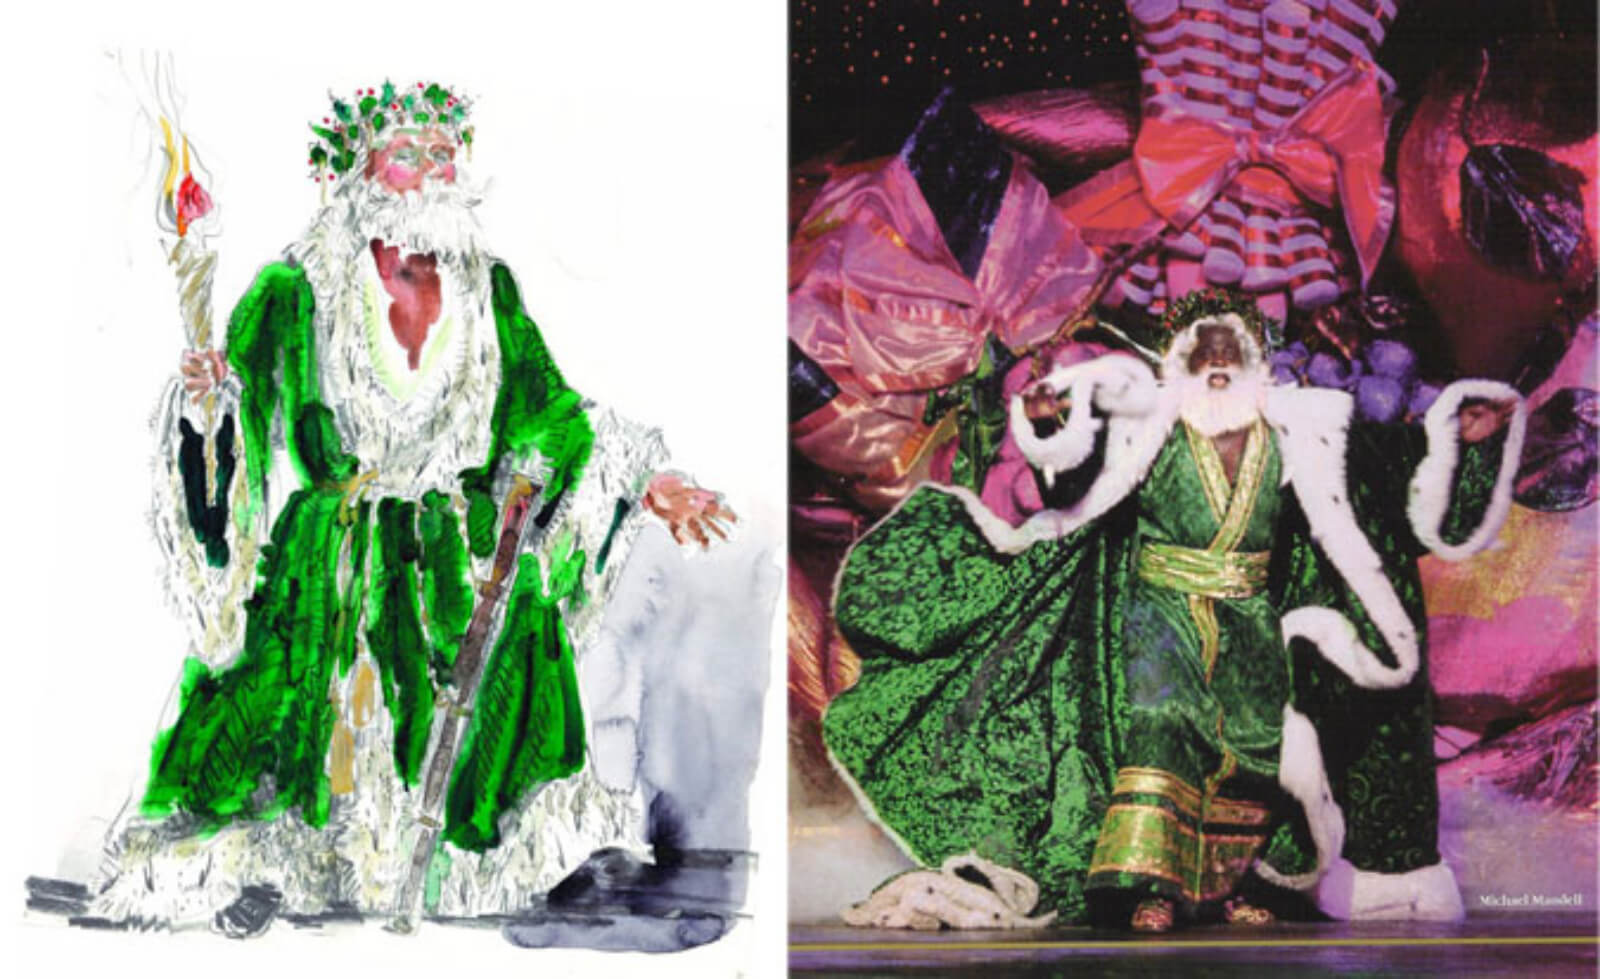 The Ghost of Christmas Present (Michael Mandell) to the right of an illustration of the green flowing conceptual costume